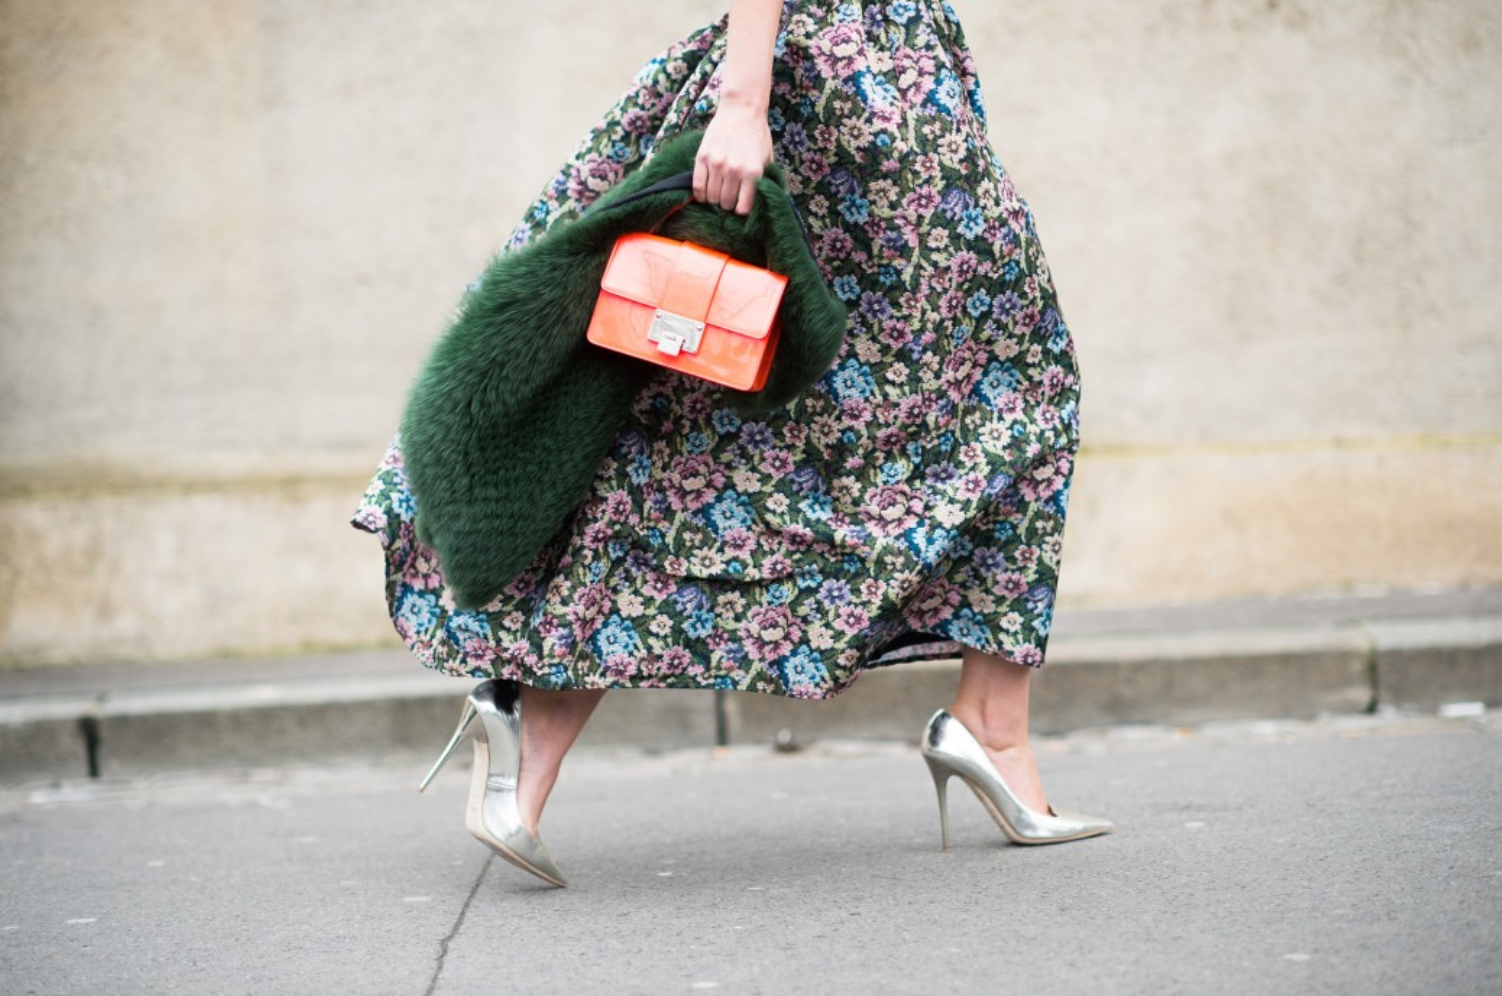 Paris Fashion Week - Adam Katz Sinding - Stijlmeisje - Fashion Blog